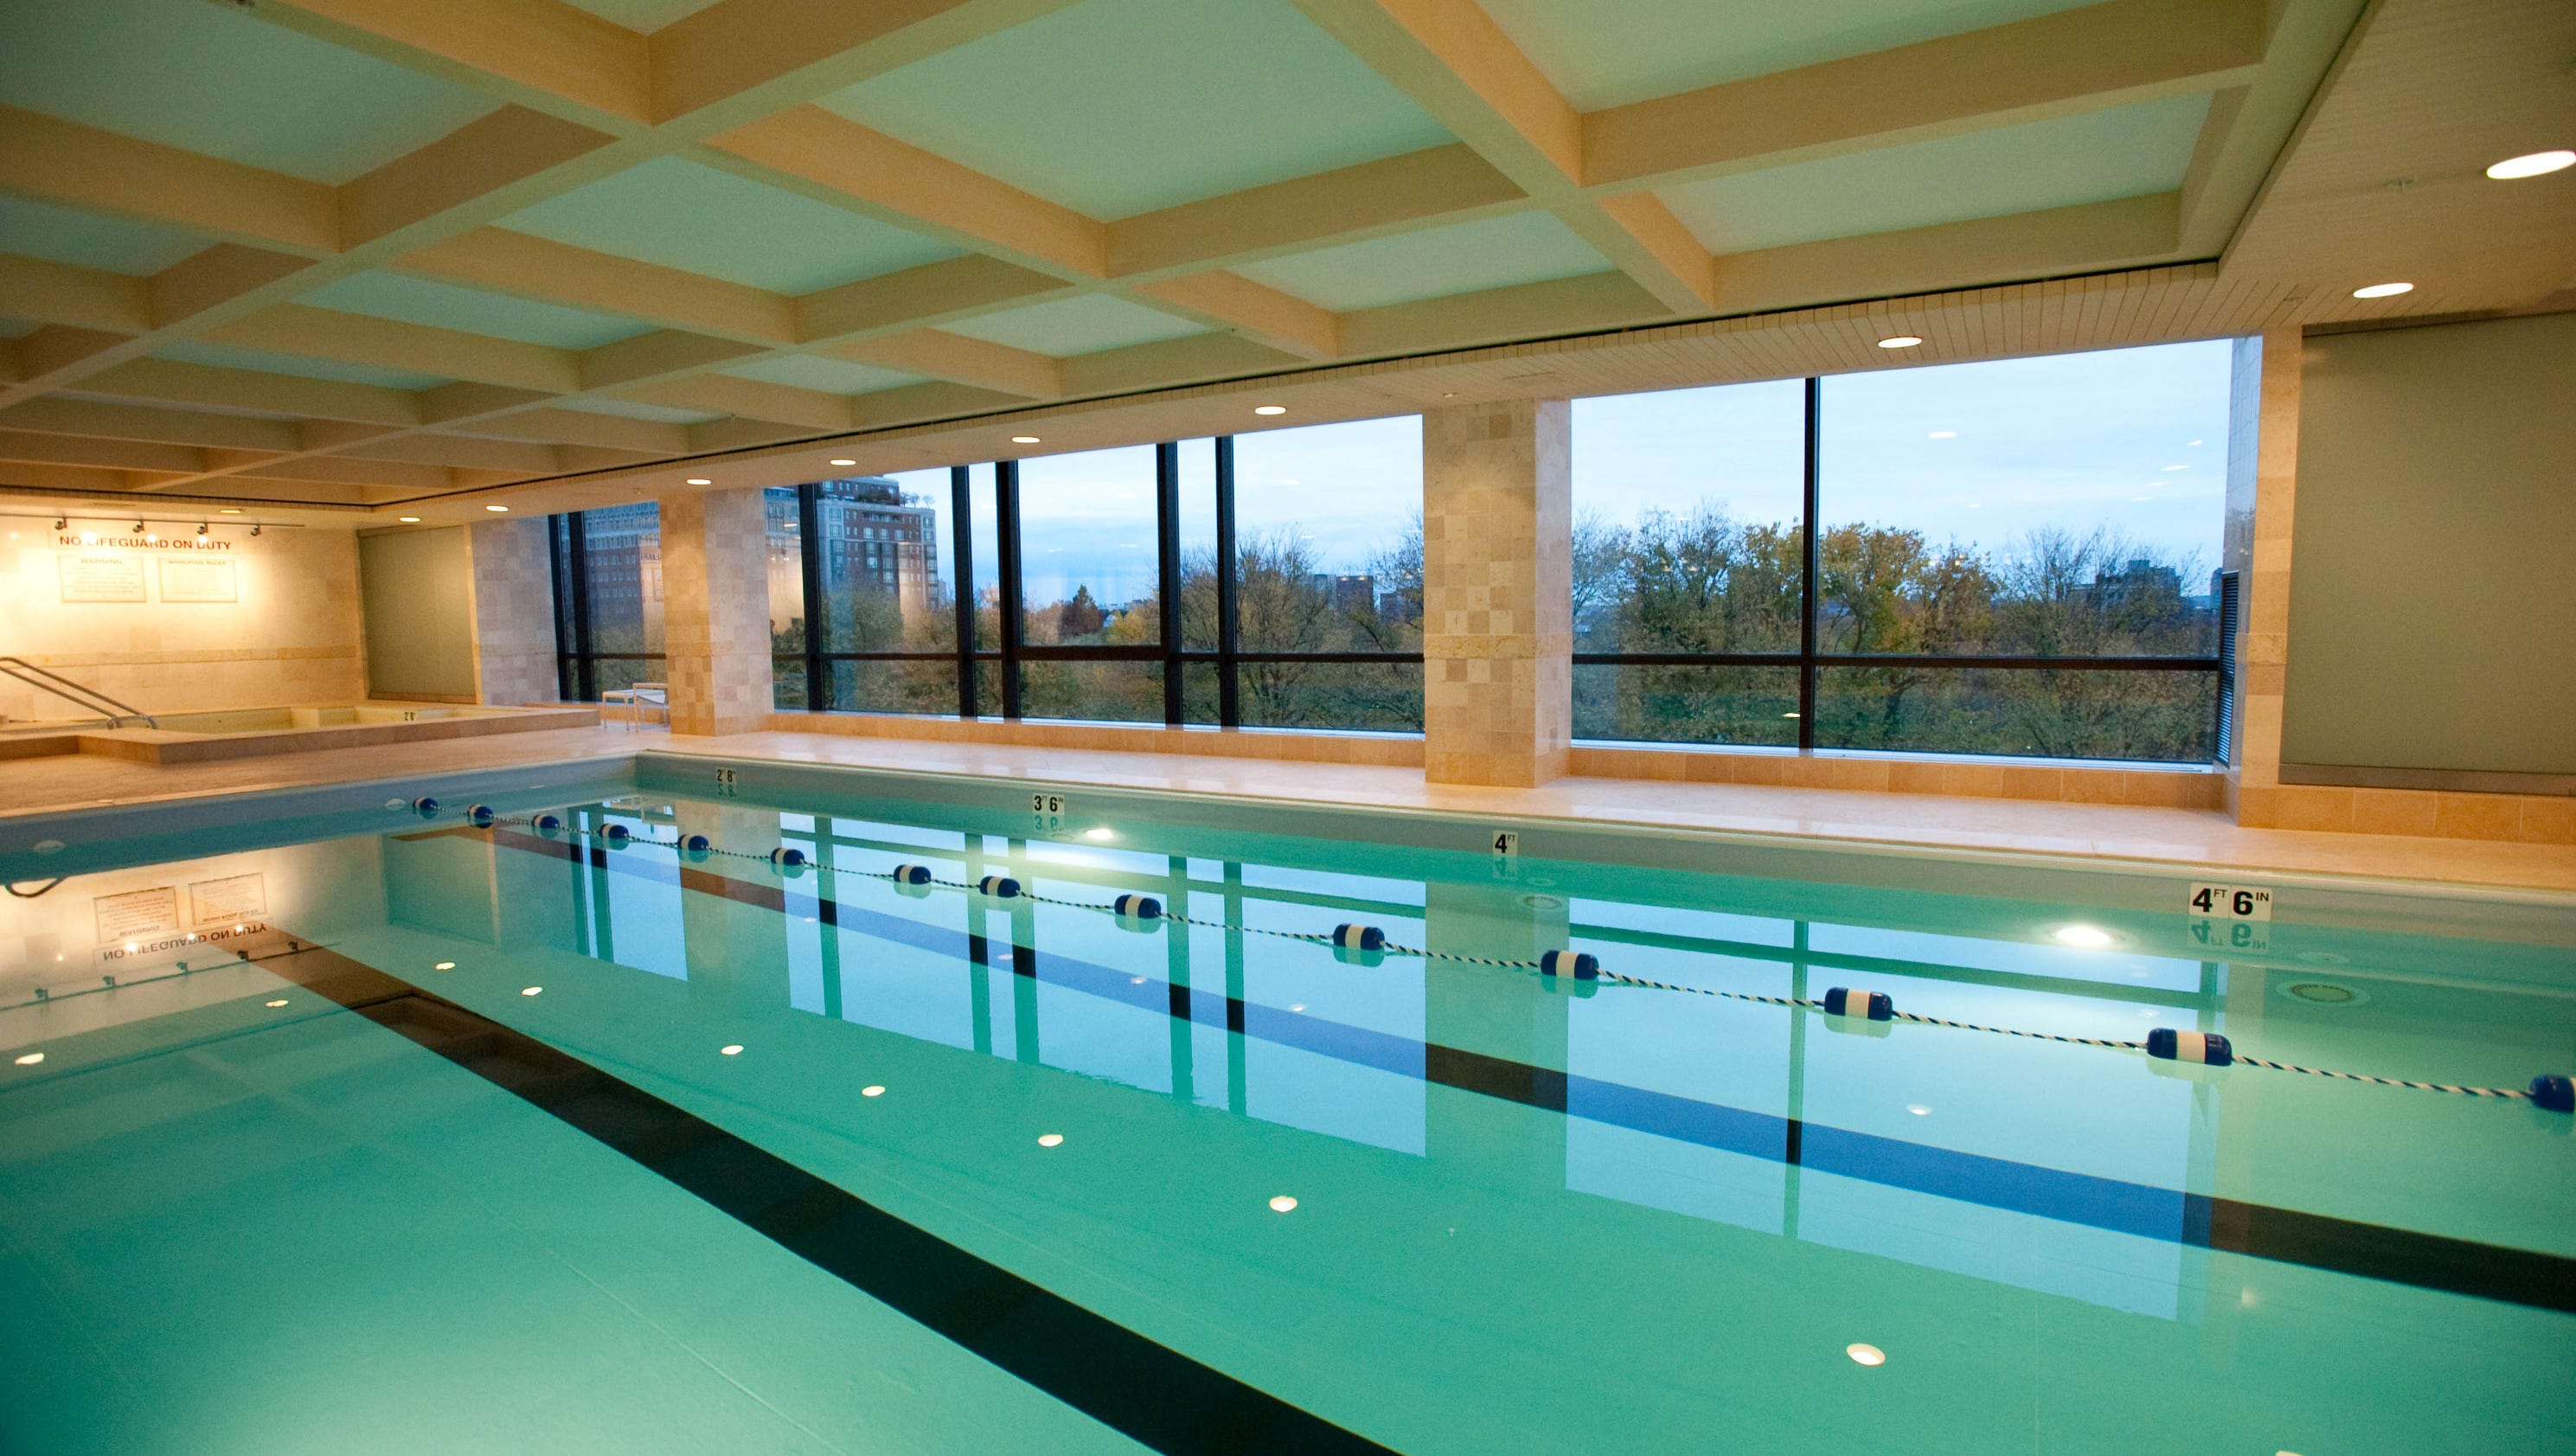 10 beautiful indoor hotel pools for Hotels with indoor pools in florida